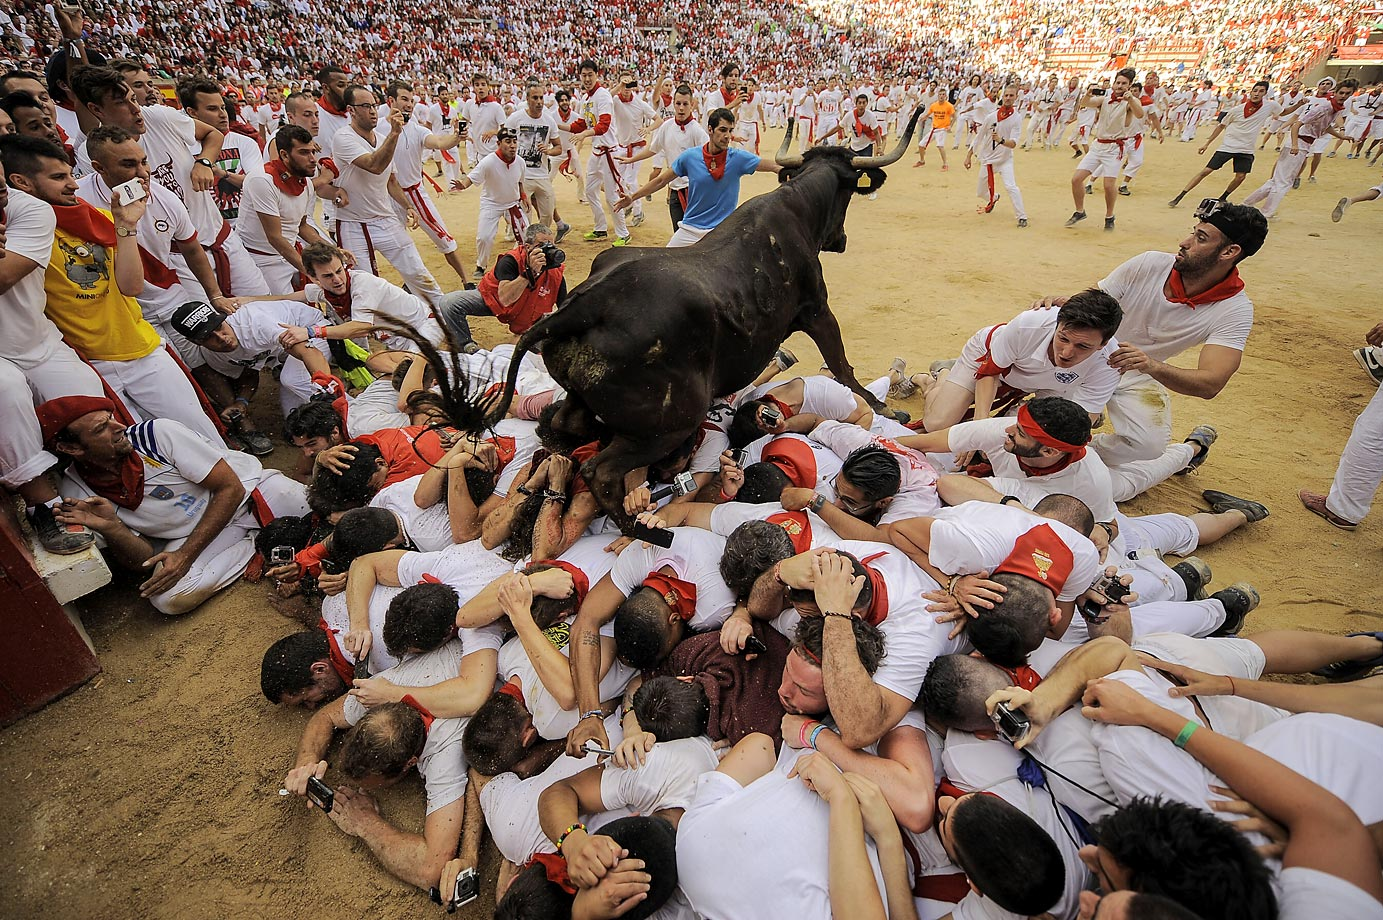 Revelers at the annual running of the bulls.